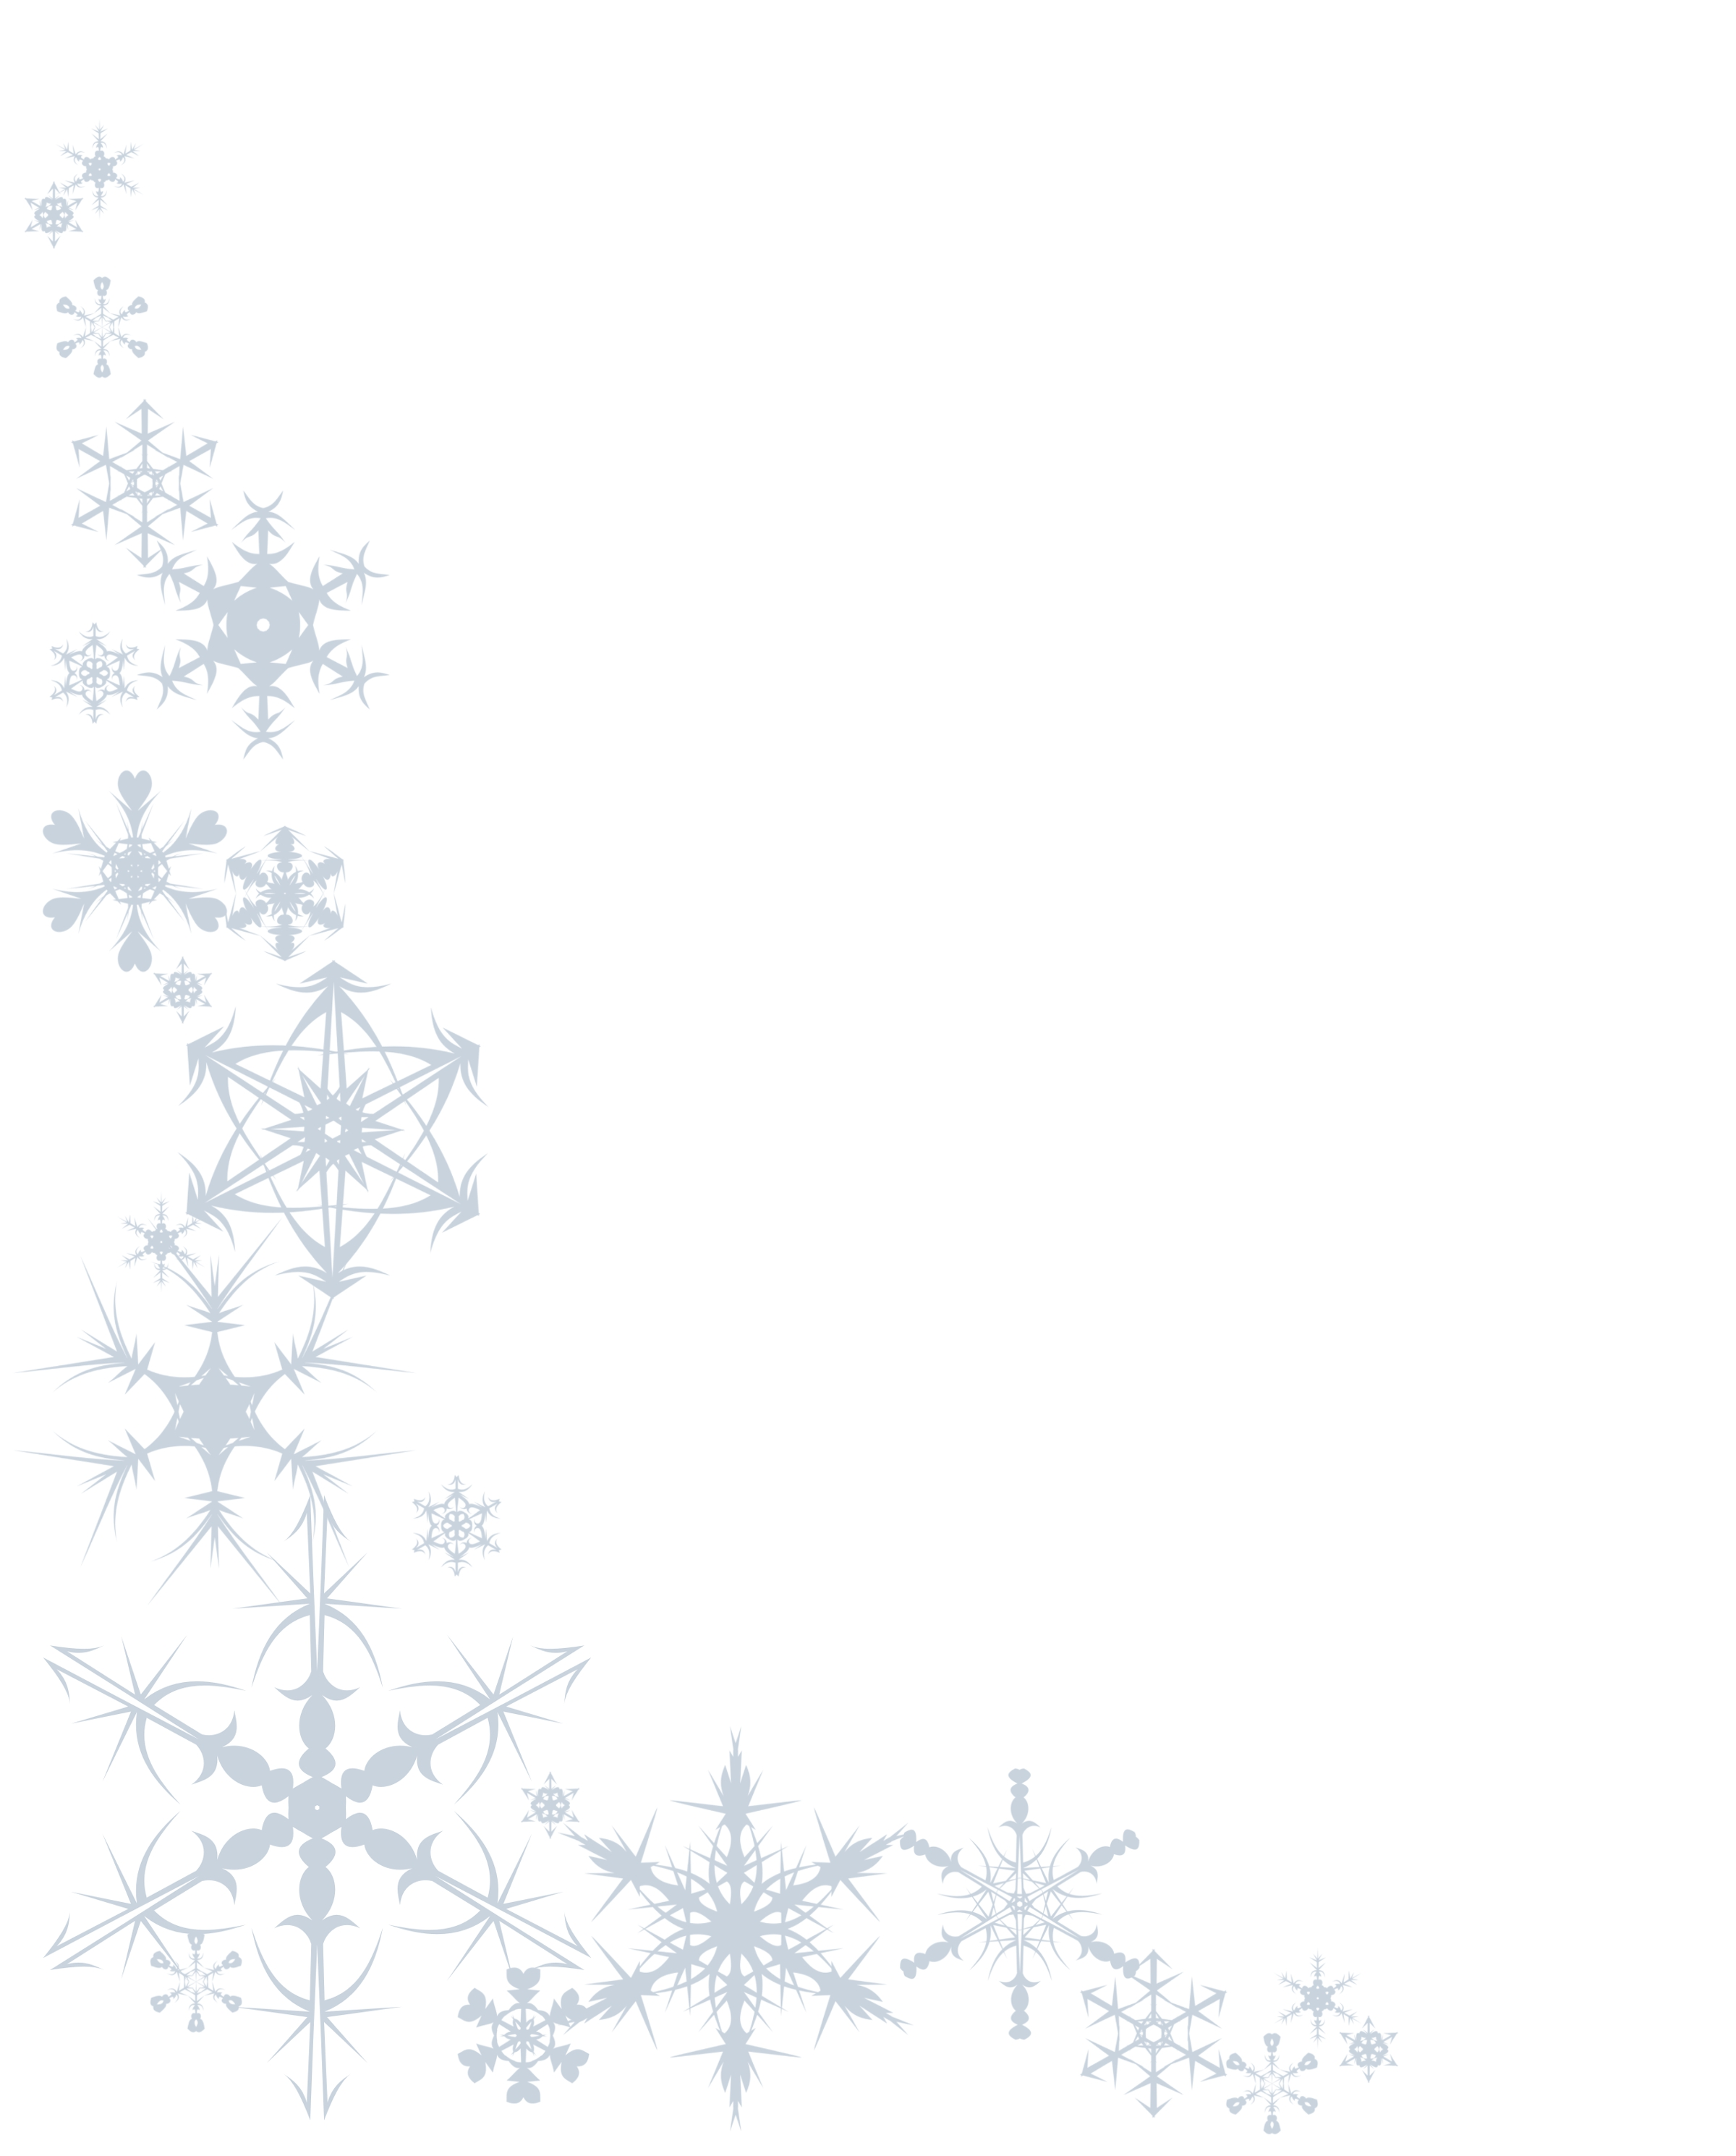 Christmas Snowflakes Borders Clipart#2036844.